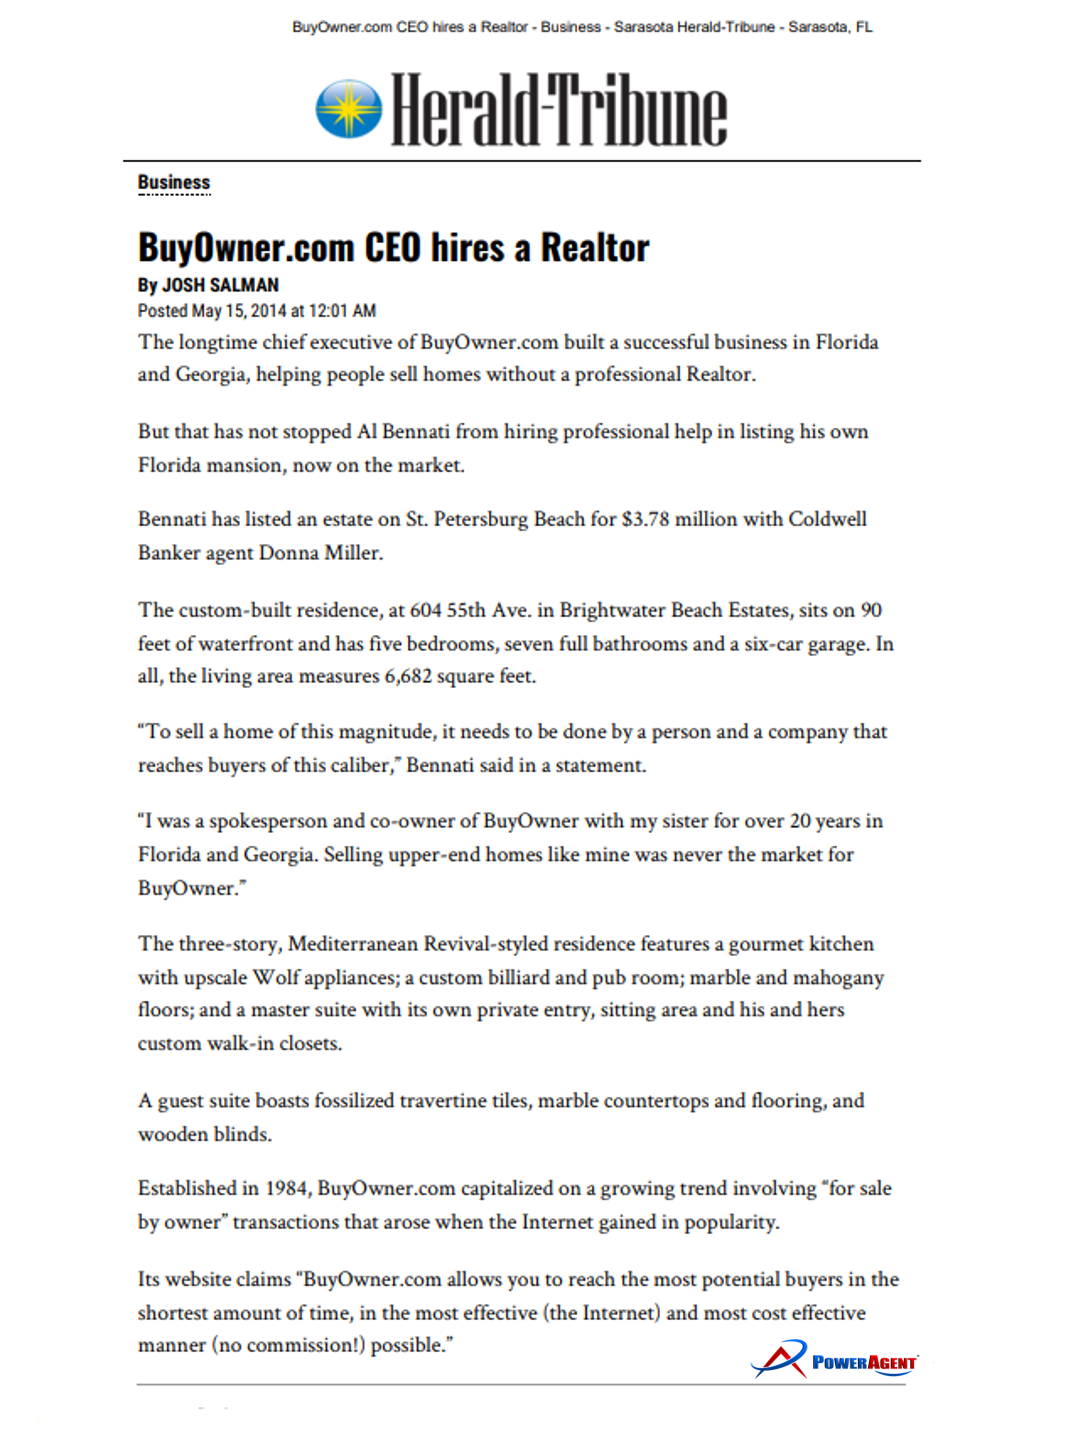 BuyOwner-CEO-Hires-Realtor-Article.png